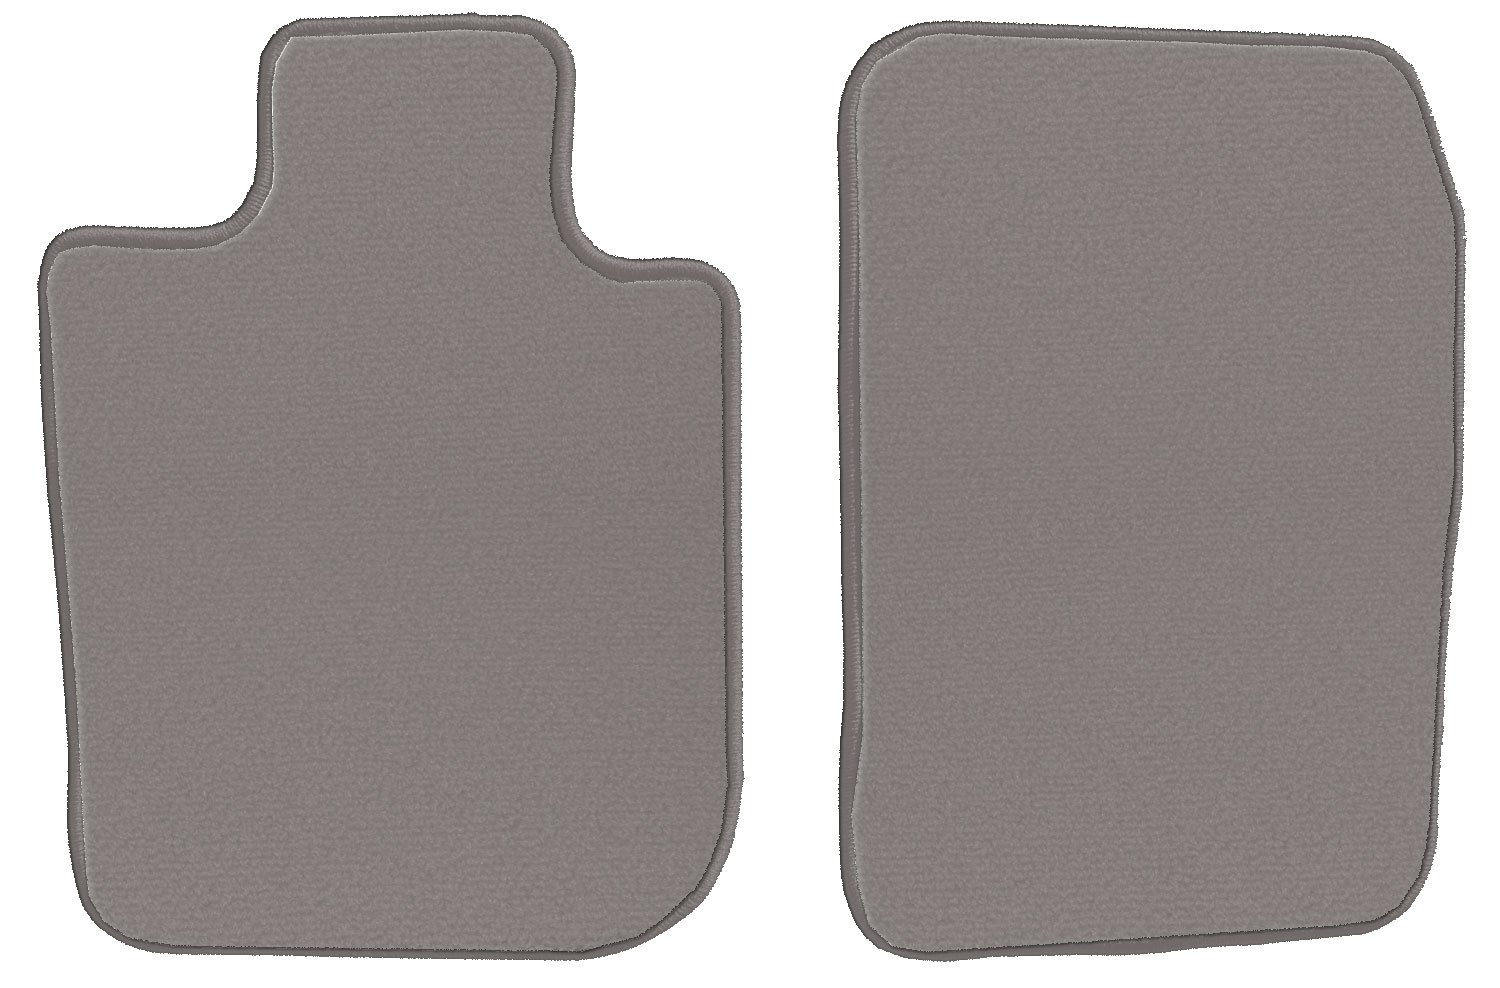 1989 1991 1994 Chevrolet Blazer 2Door Grey Loop Driver /& Passenger GGBAILEY D3455A-F1A-GY-LP Custom Fit Automotive Carpet Floor Mats for 1987 1992 1988 1990 1993